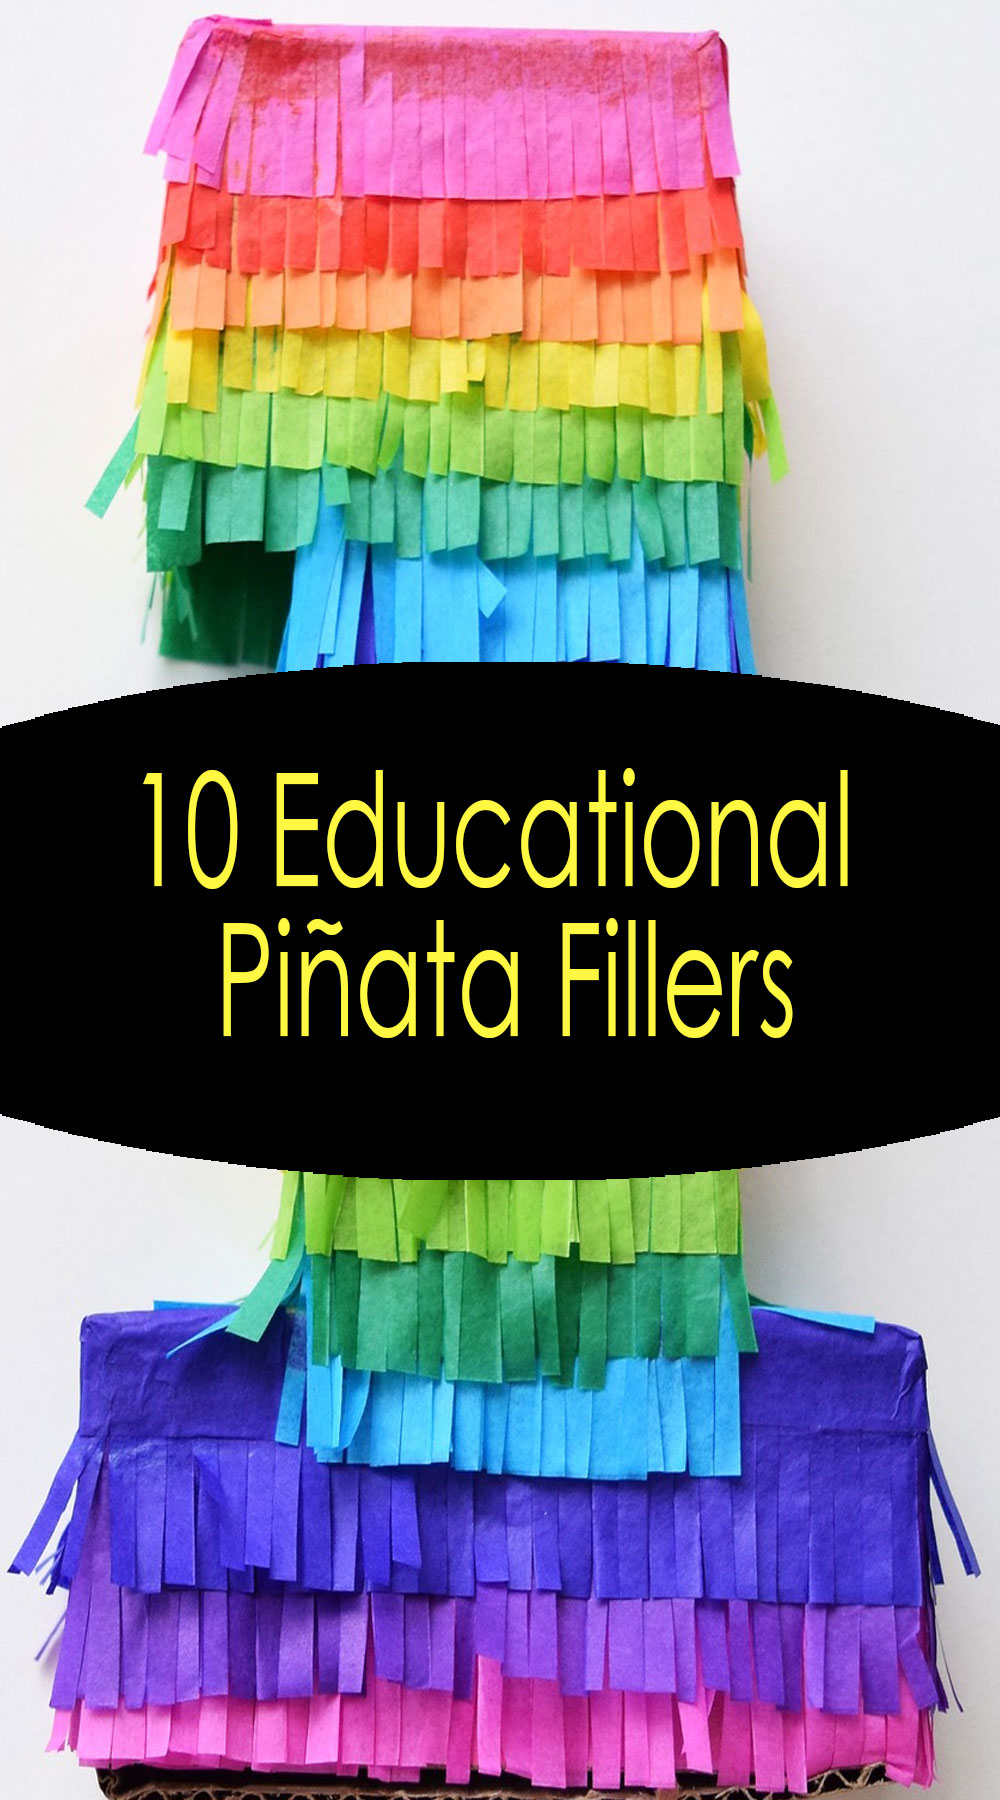 10 Educational Piñata Fillers